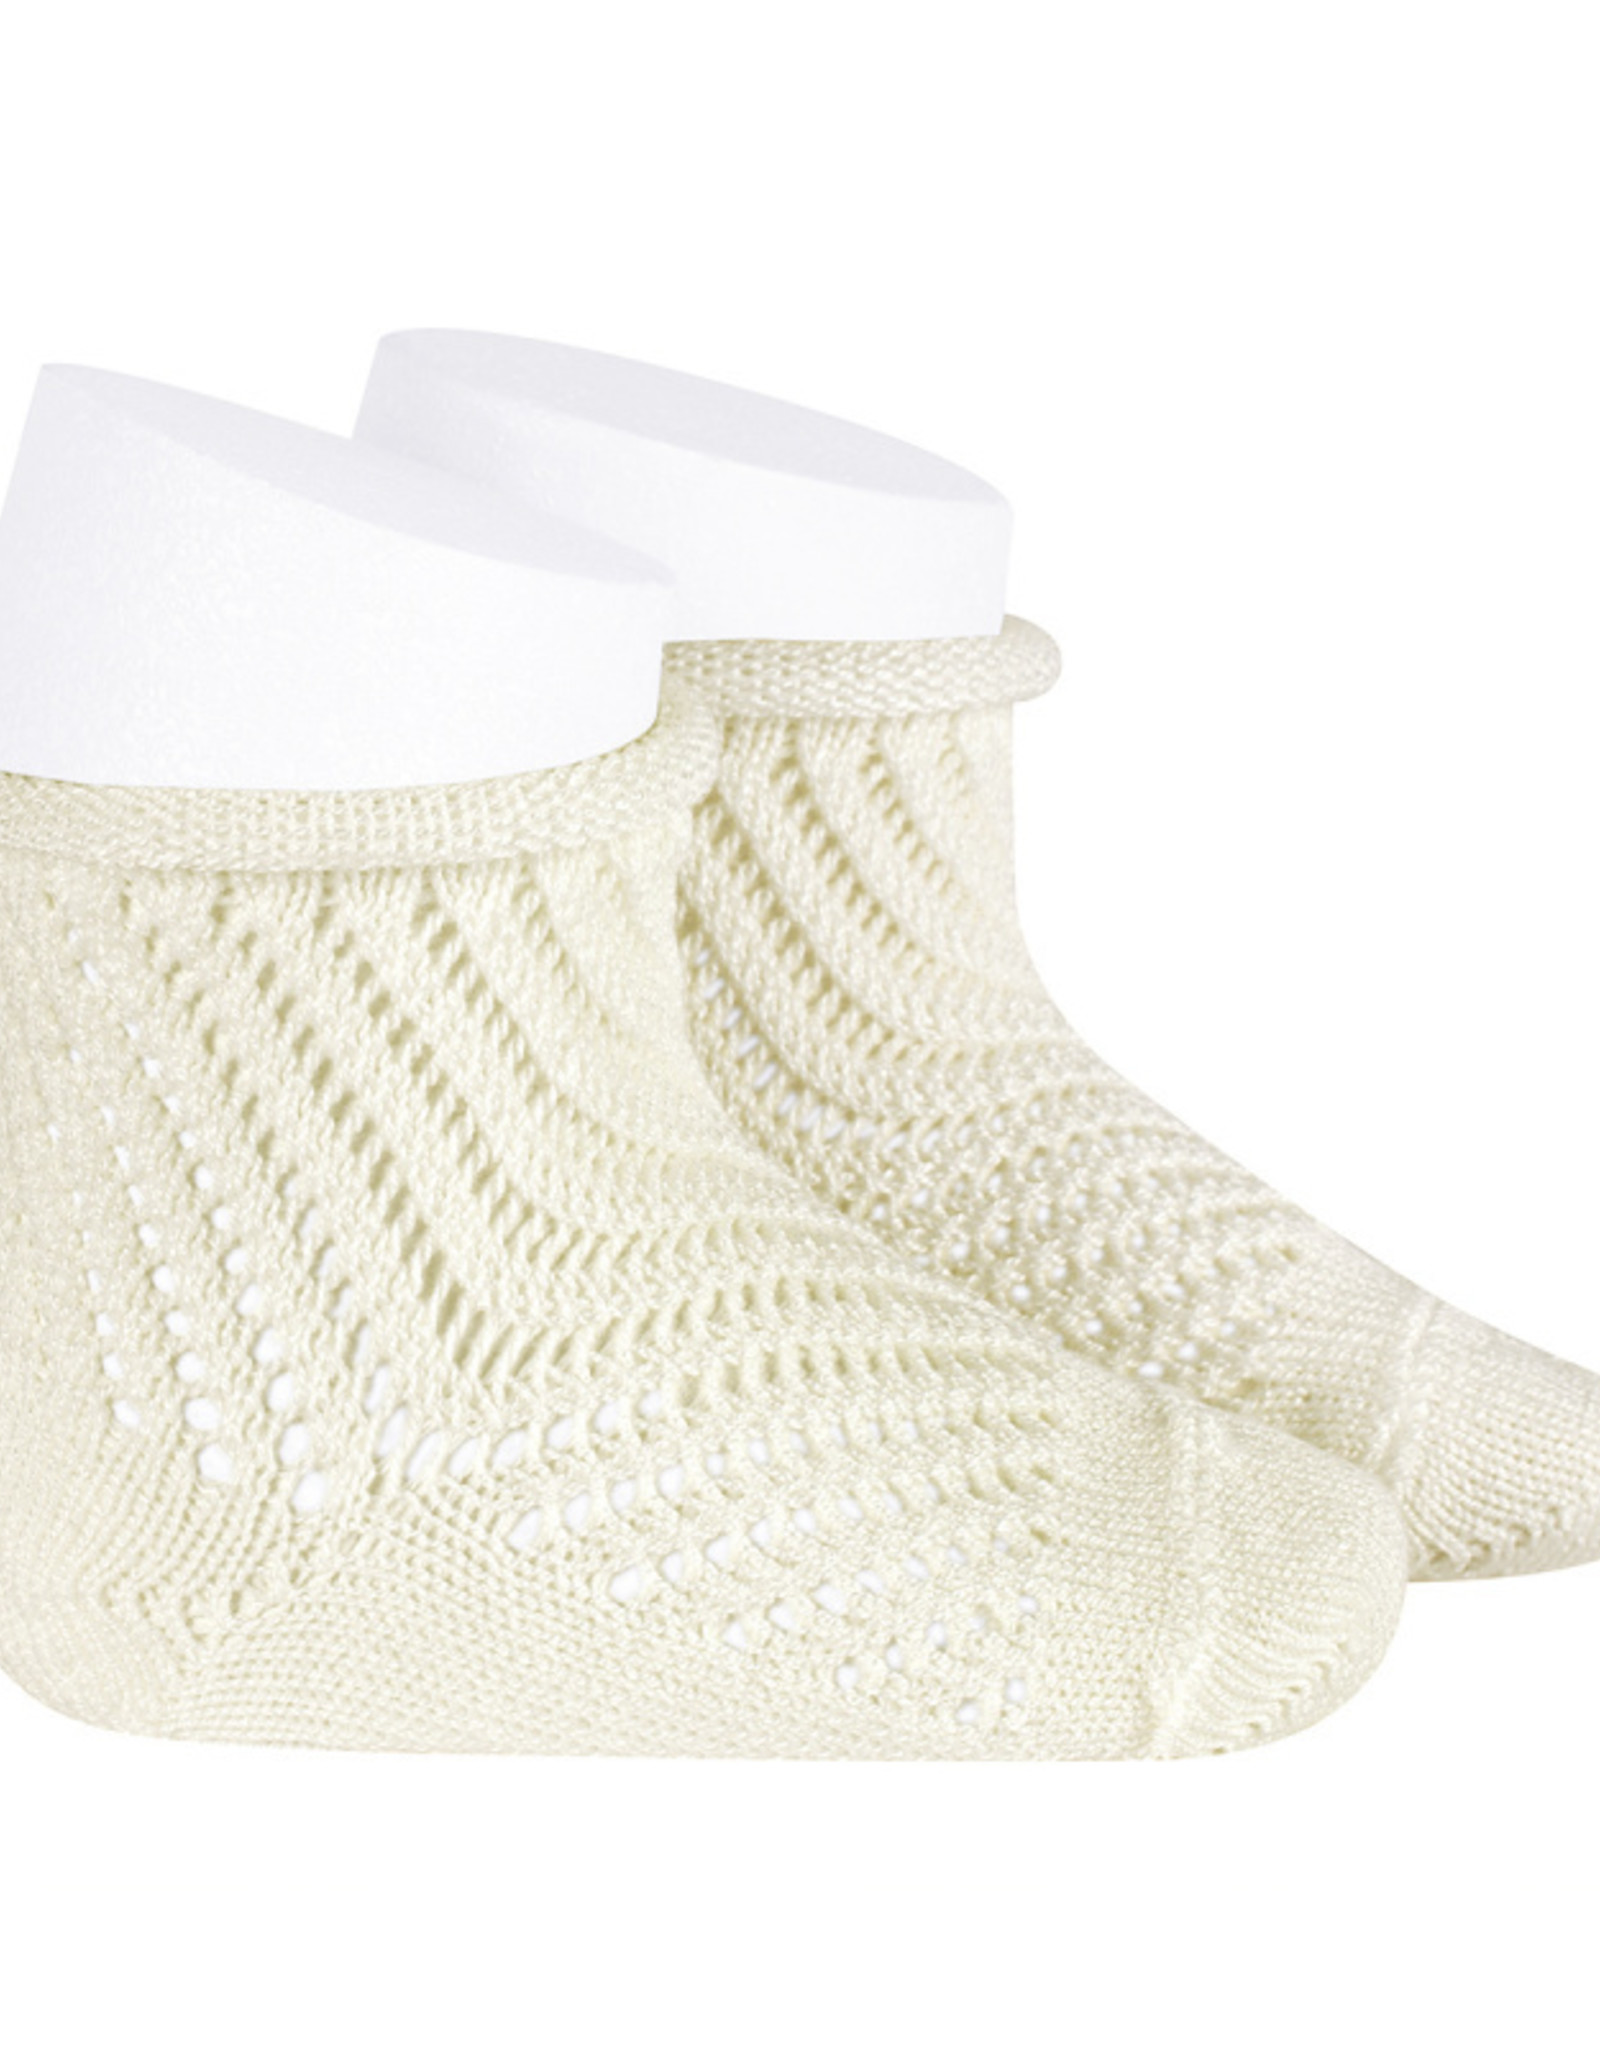 Condor Condor Crochet Sock with Rolled Cuff